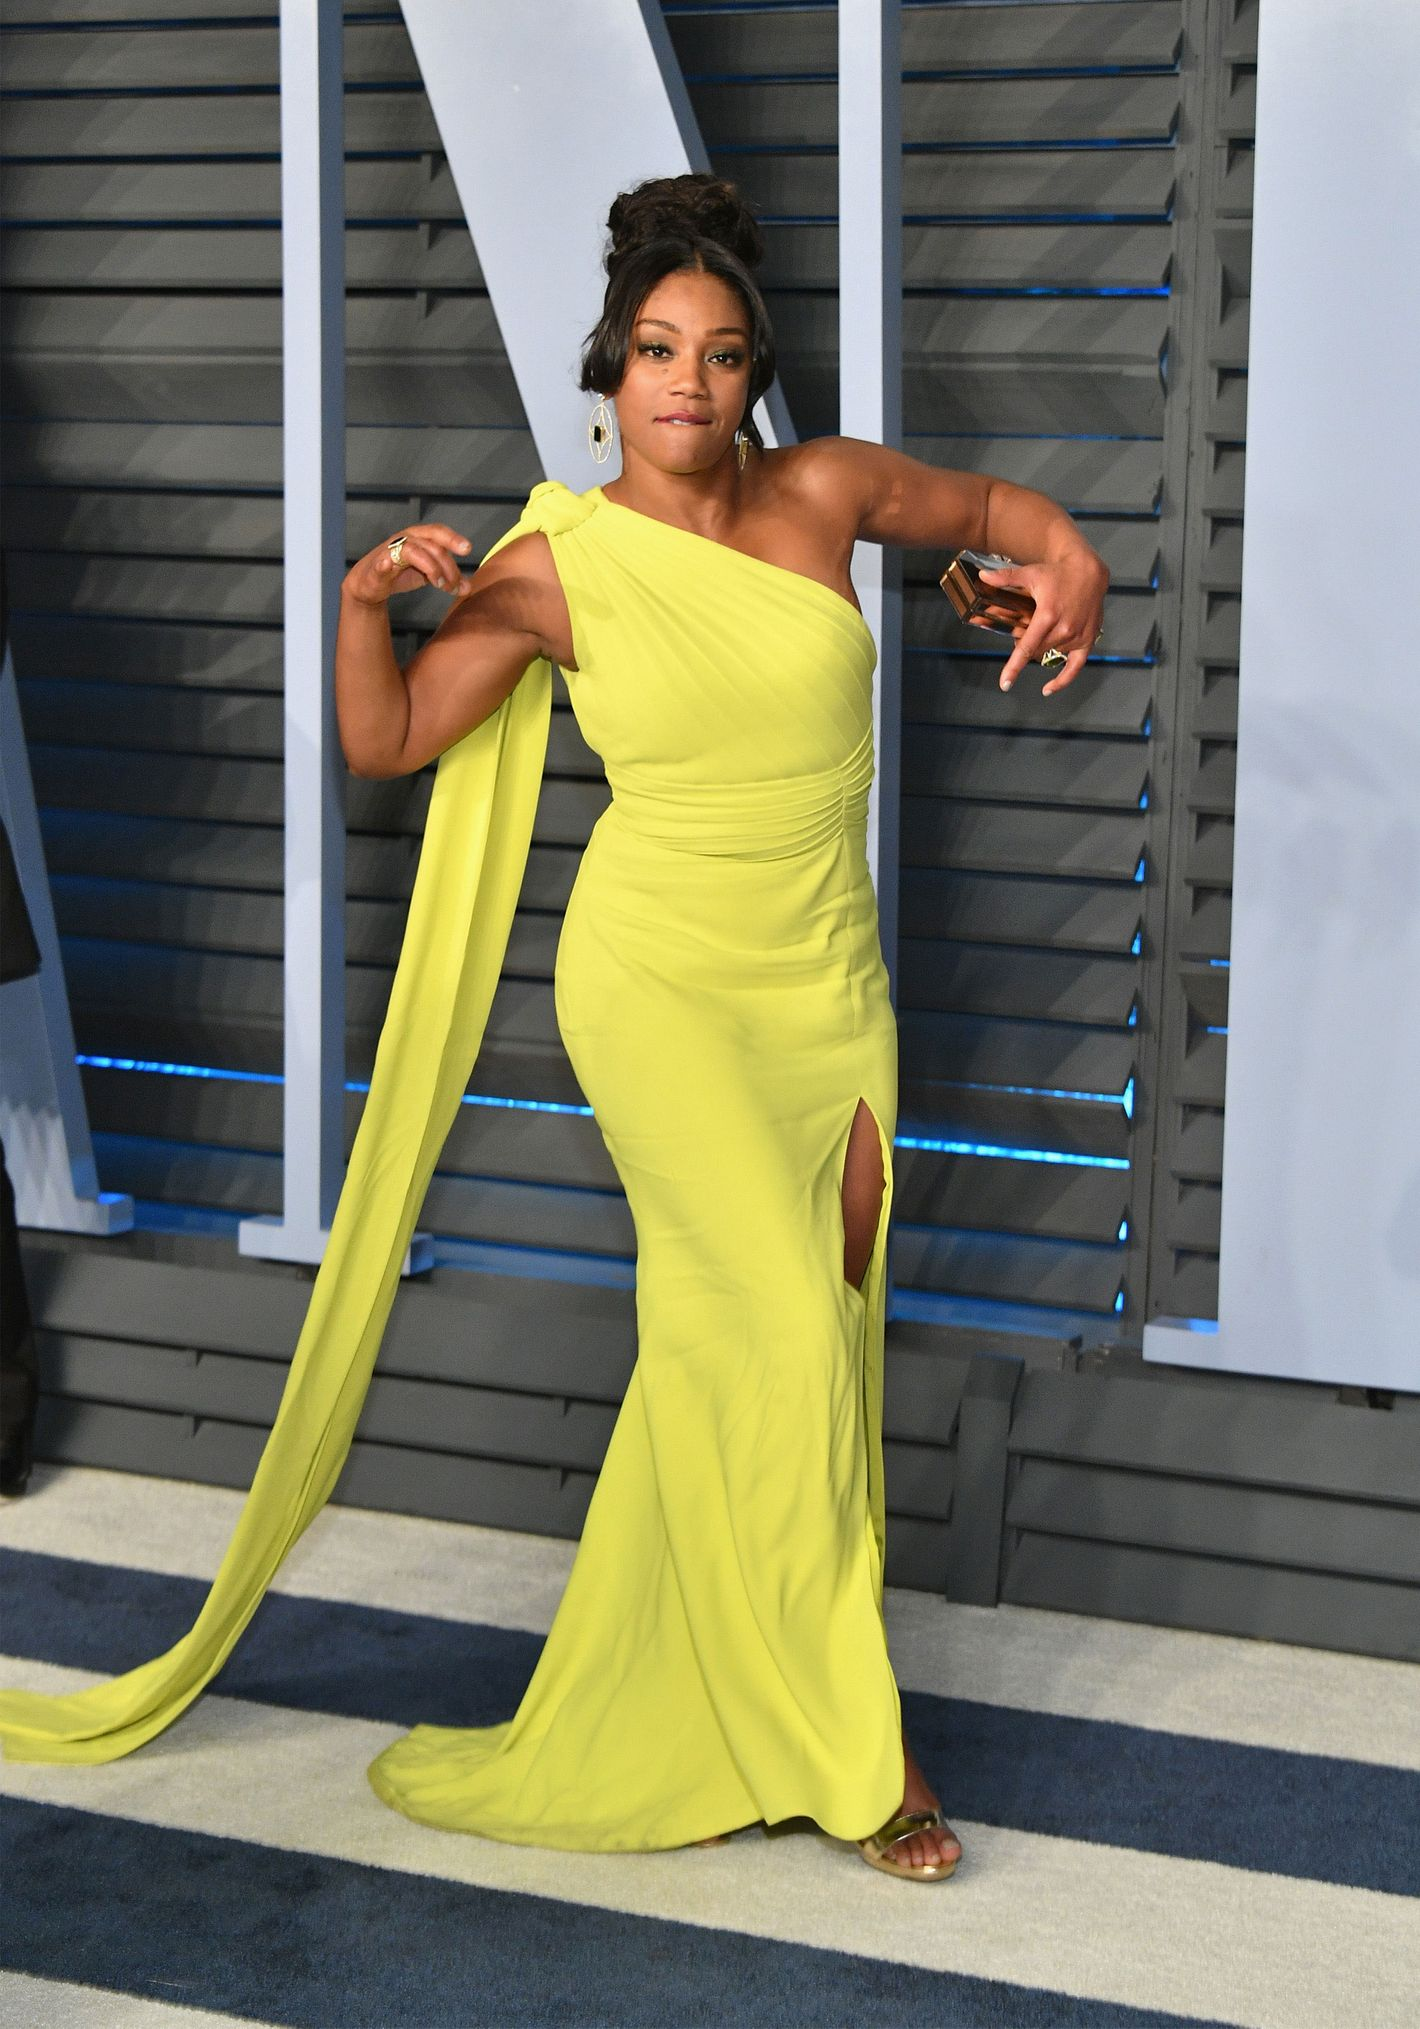 The Best Looks From the Vanity Fair Oscars After-Party